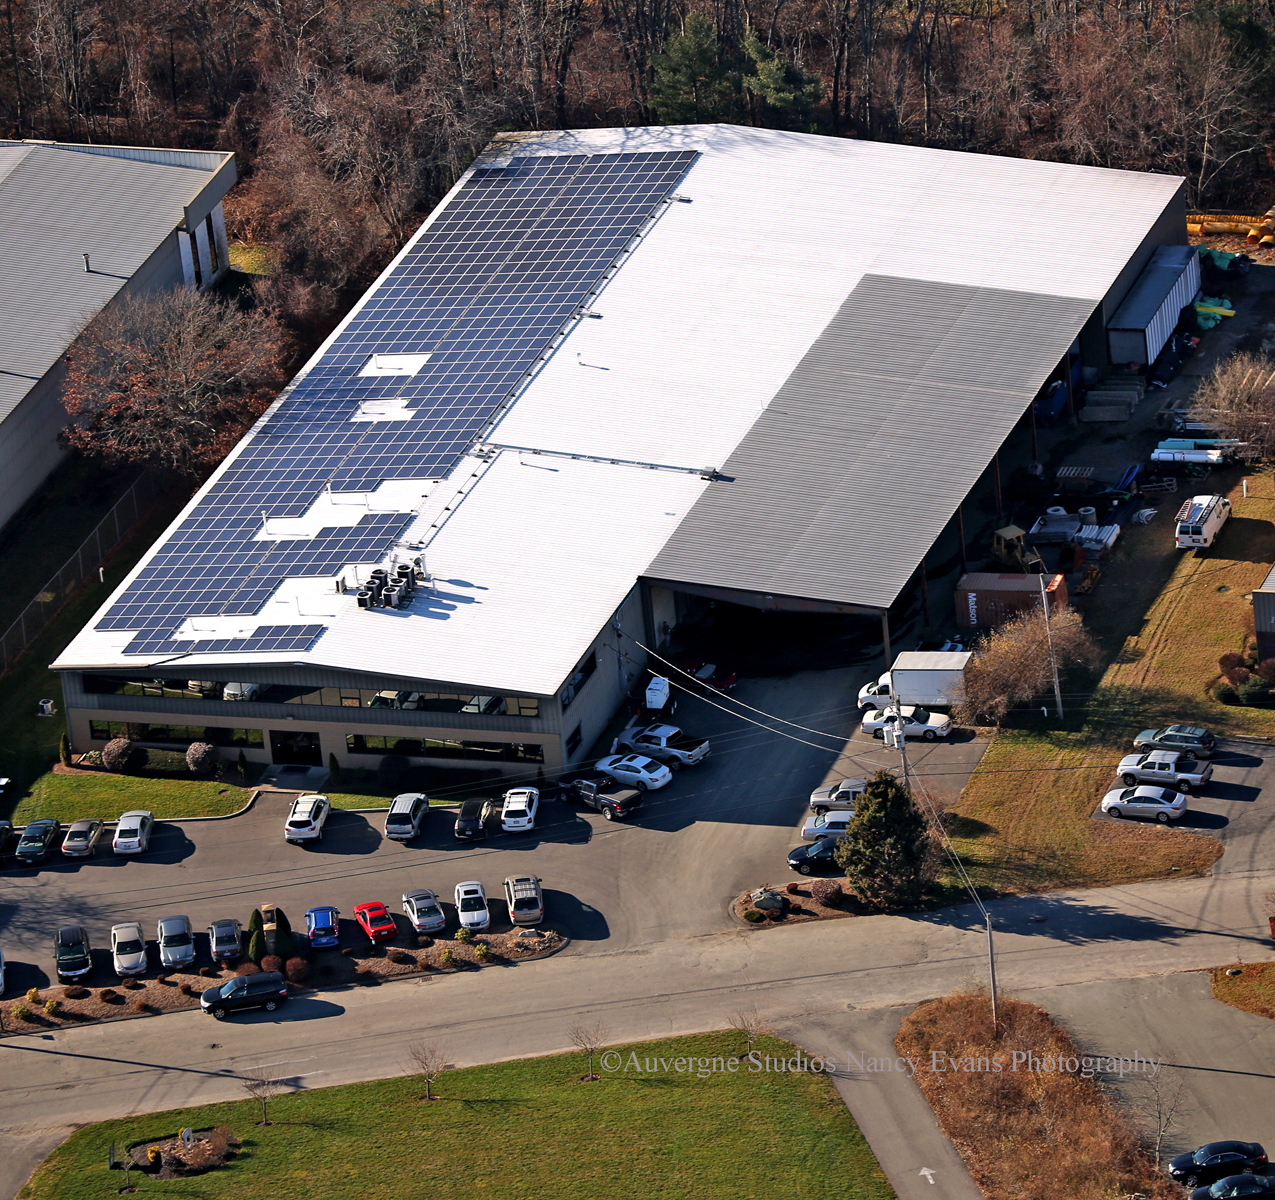 Aerial view of completed 124.8kW solar system engineered, designed and installed by in-house Beaumont Solar personnel